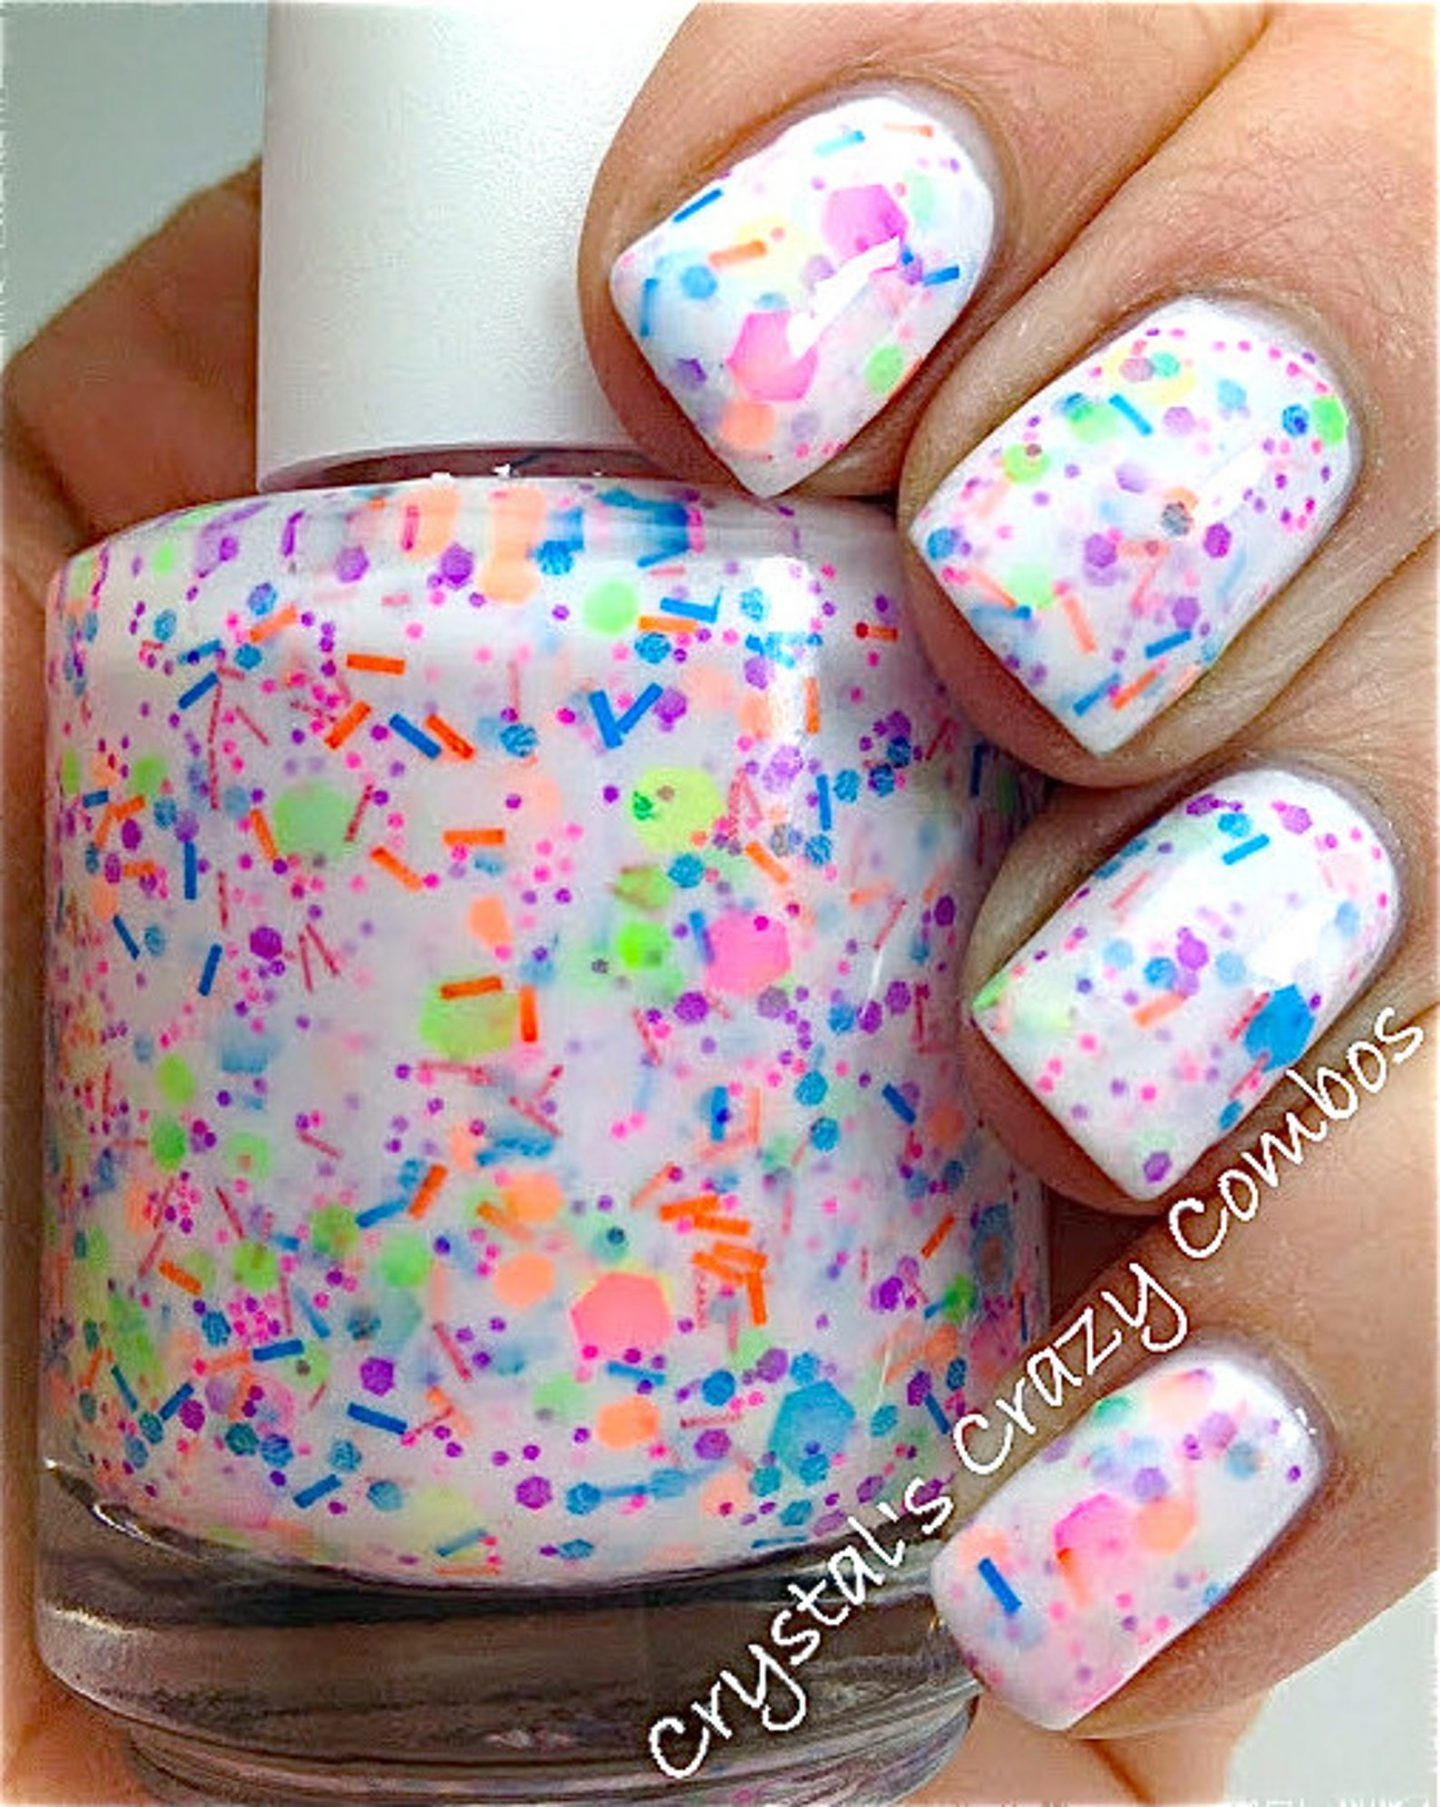 Short white nails with neon splatters